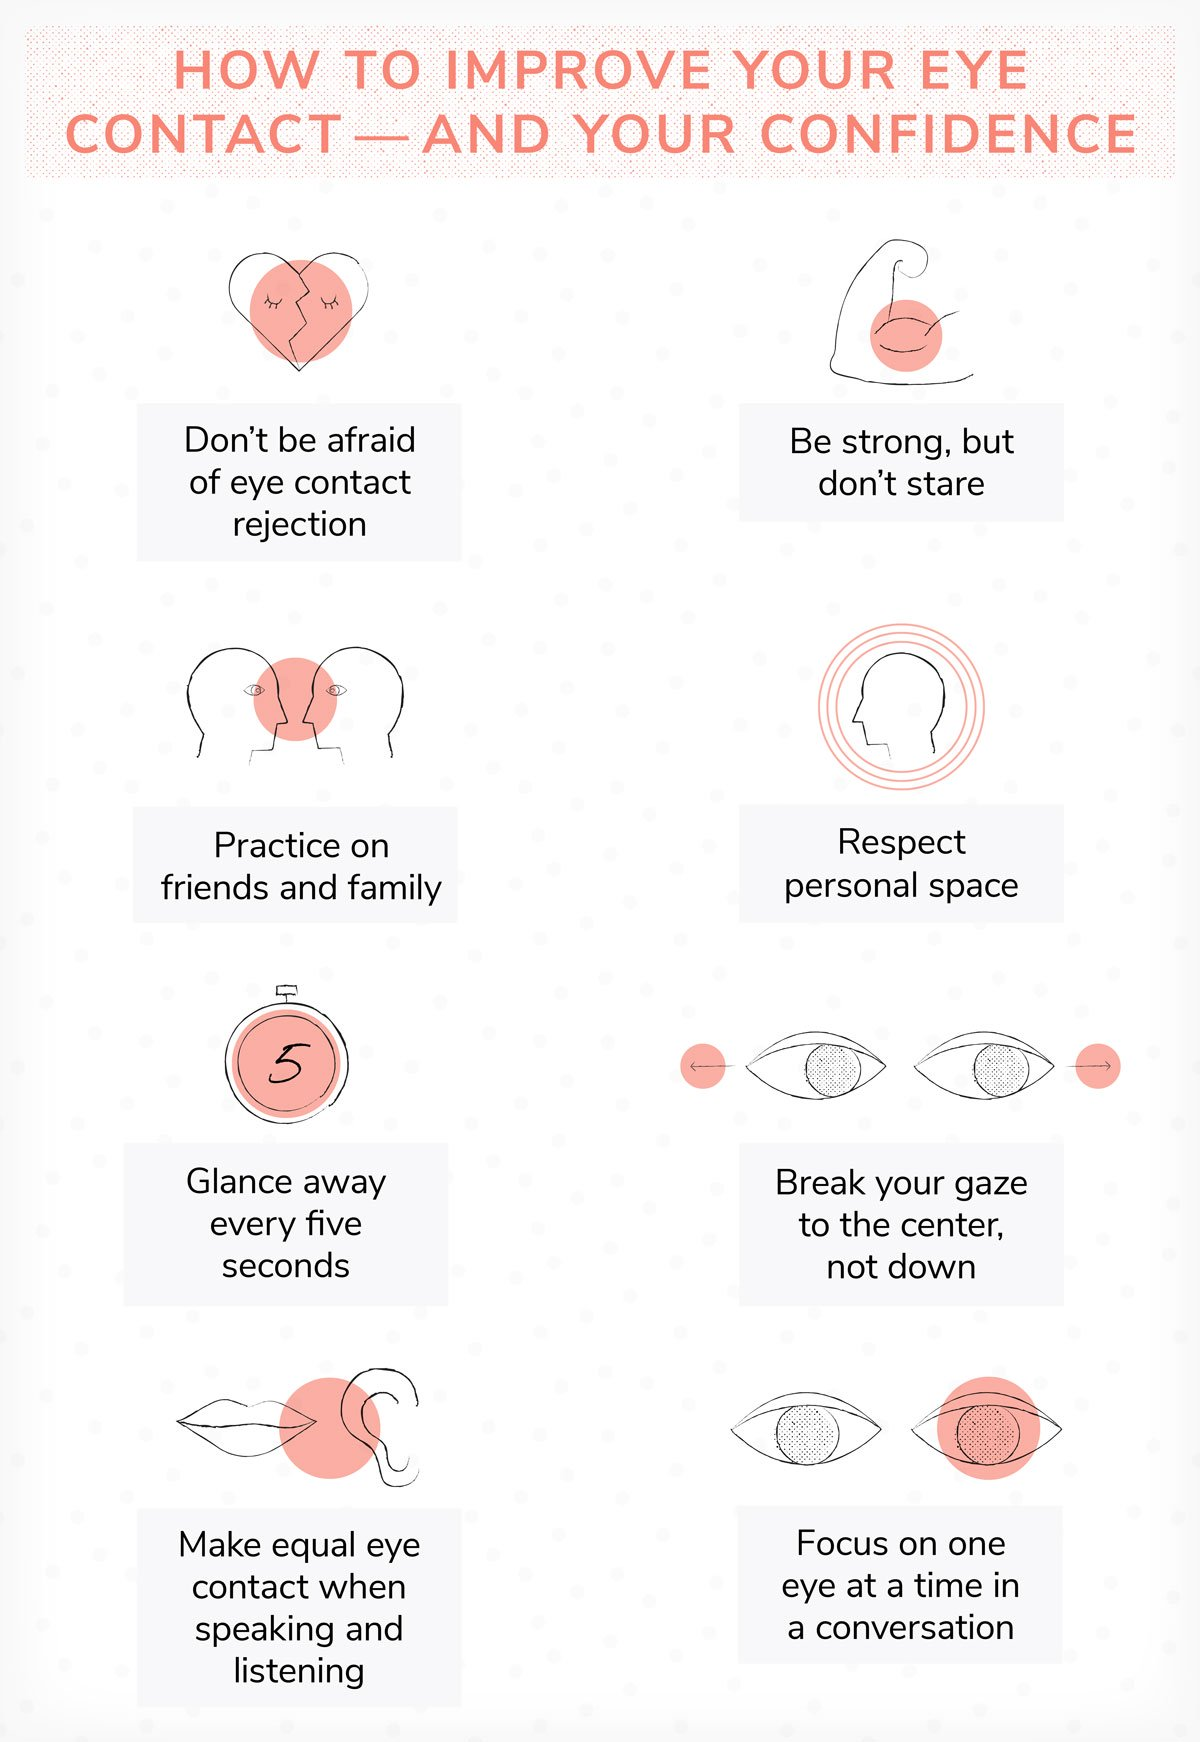 drawings with tips for improving eye contact